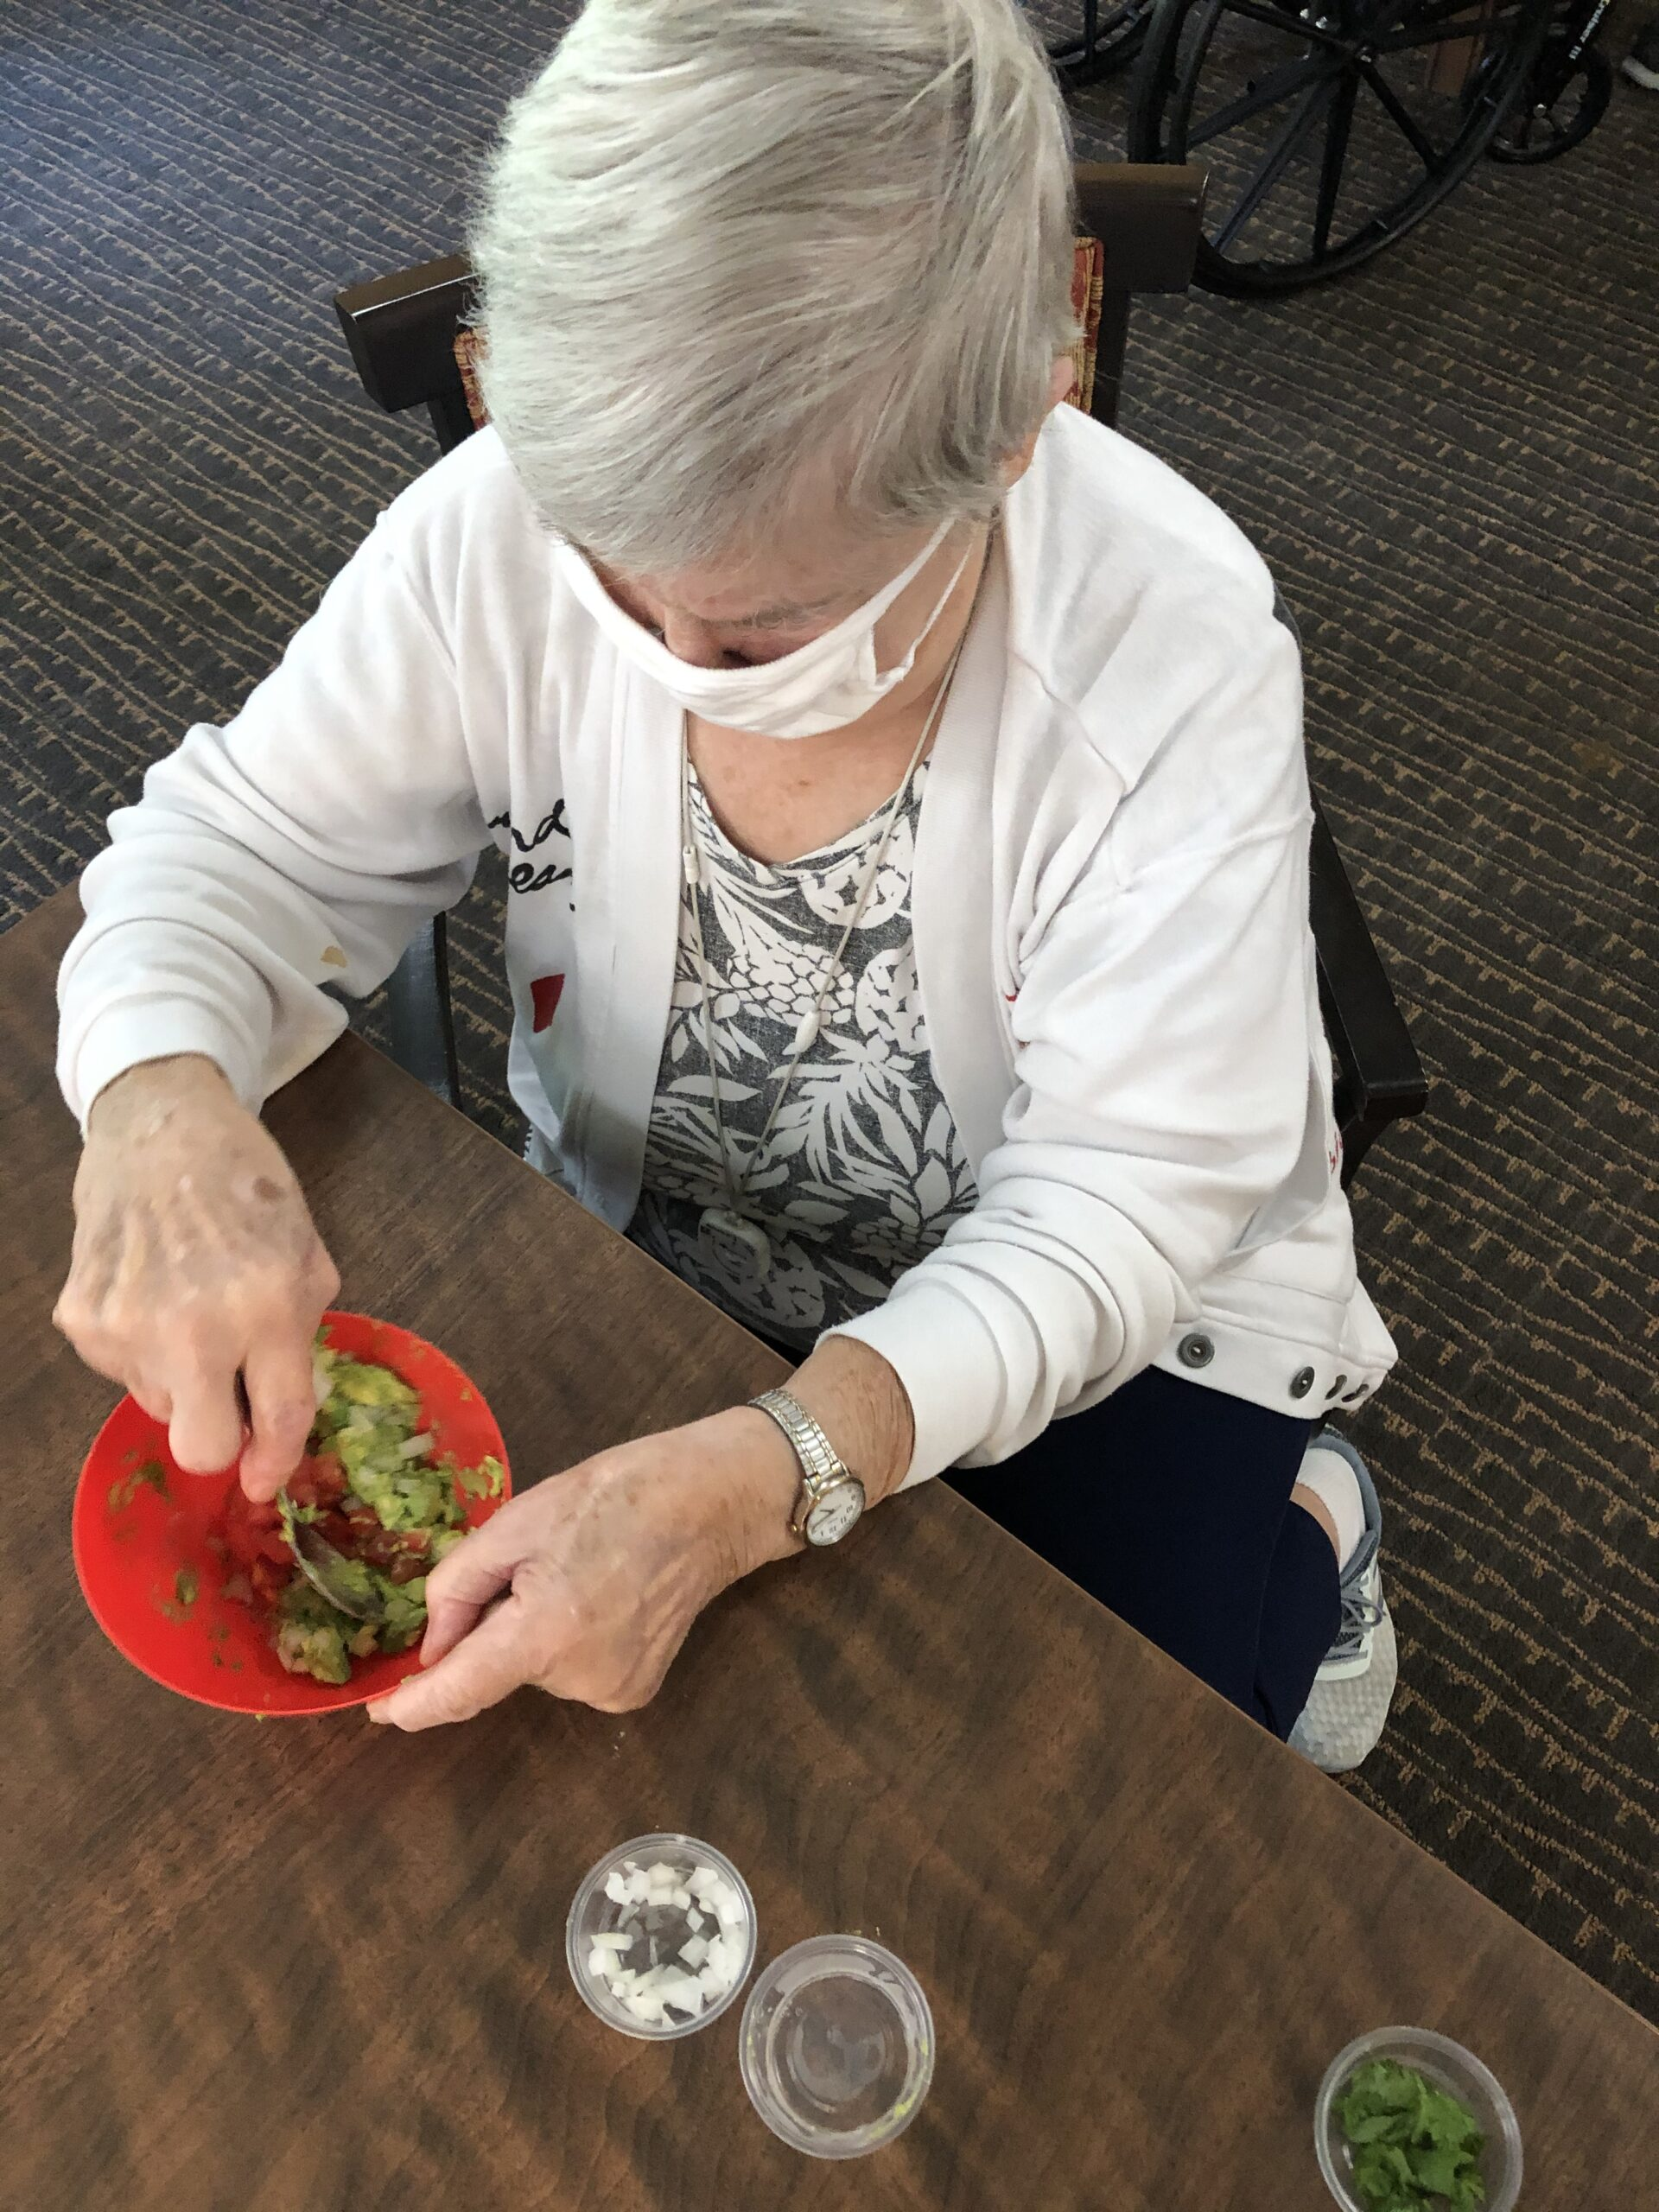 For cooking class this week we made Guacamole! Marilyn had never had it before and wasn't so sure she would like it... one bite in and she exclaimed,